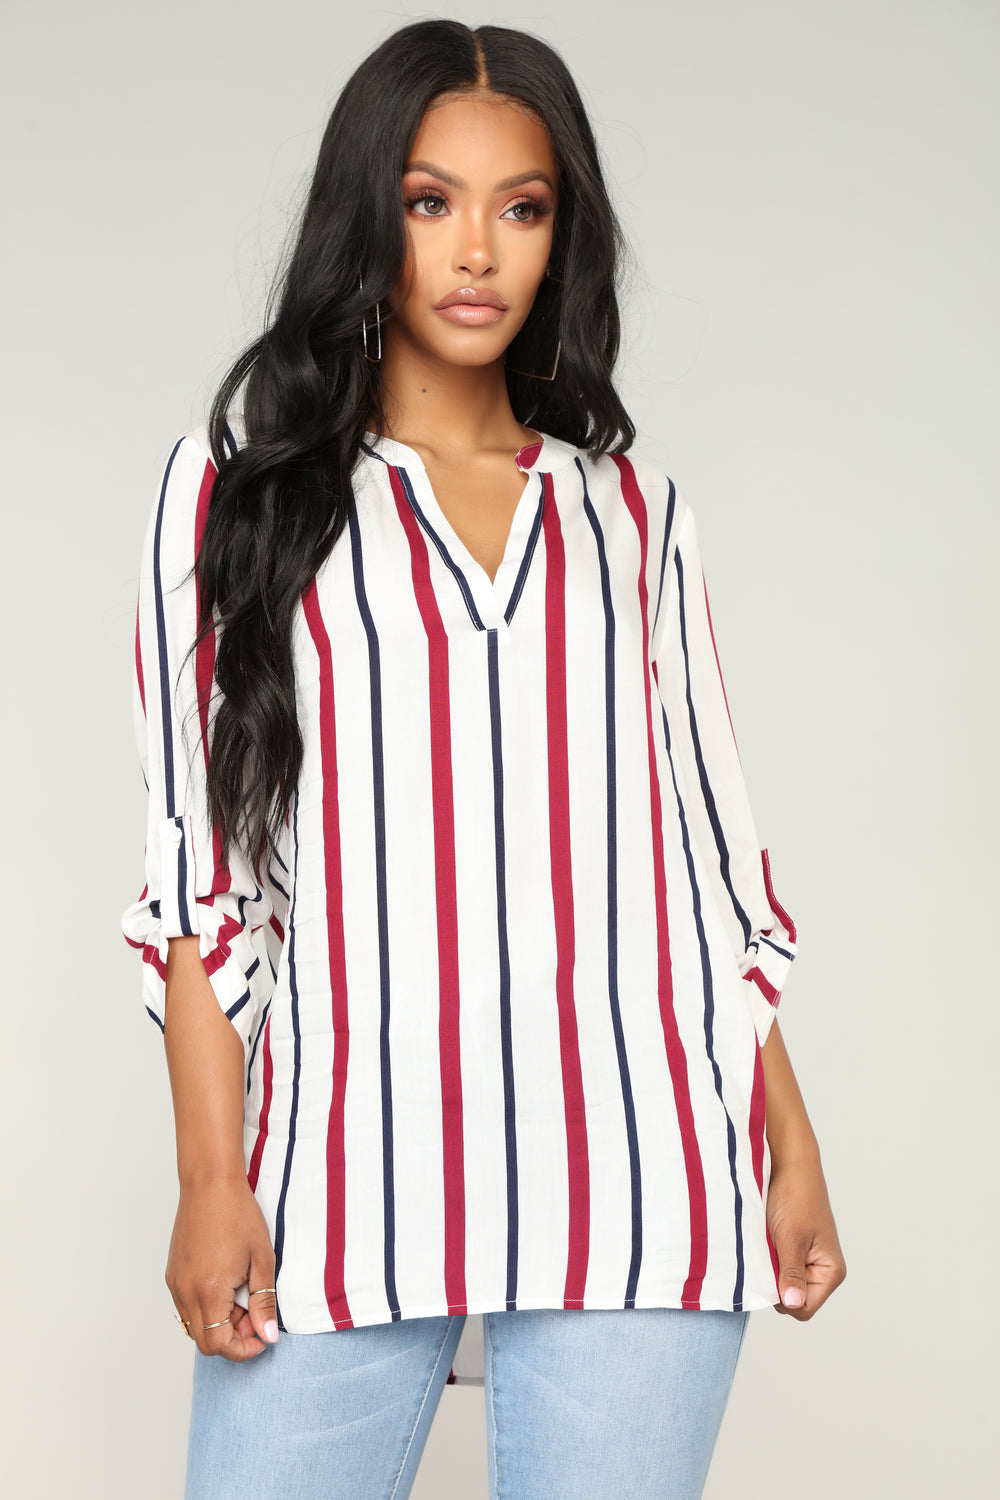 Good To Go Striped Top - Wine Multi